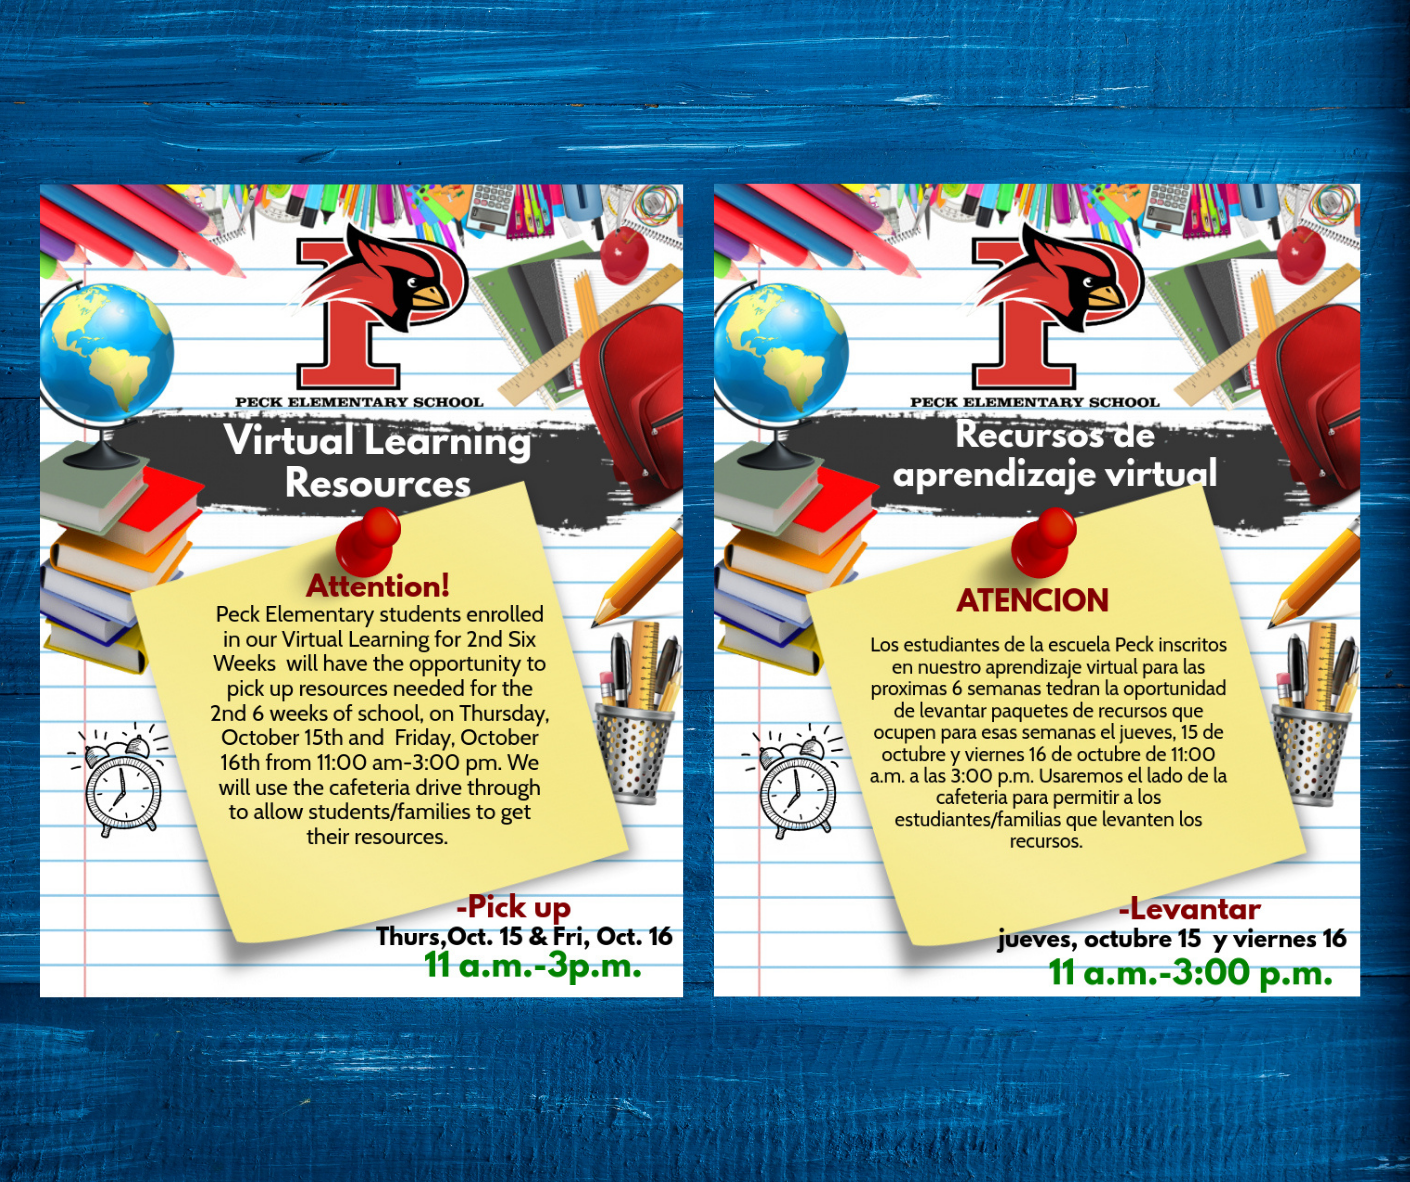 Virtual Learning resources will be available for Peck's 2nd Six Weeks virtual learning students on T